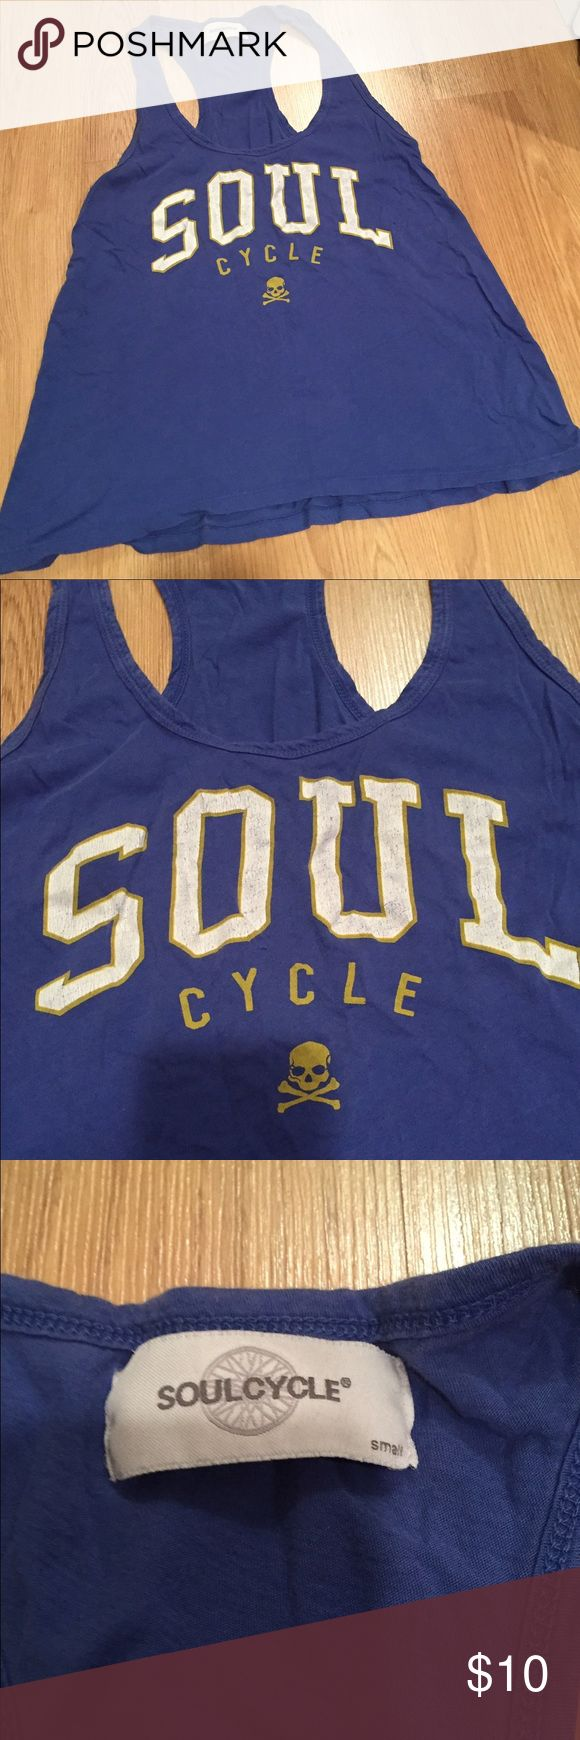 Soul cycle top Good used condition. Size small. It's like a blue purple color. Soul Cycle Tops Tank Tops